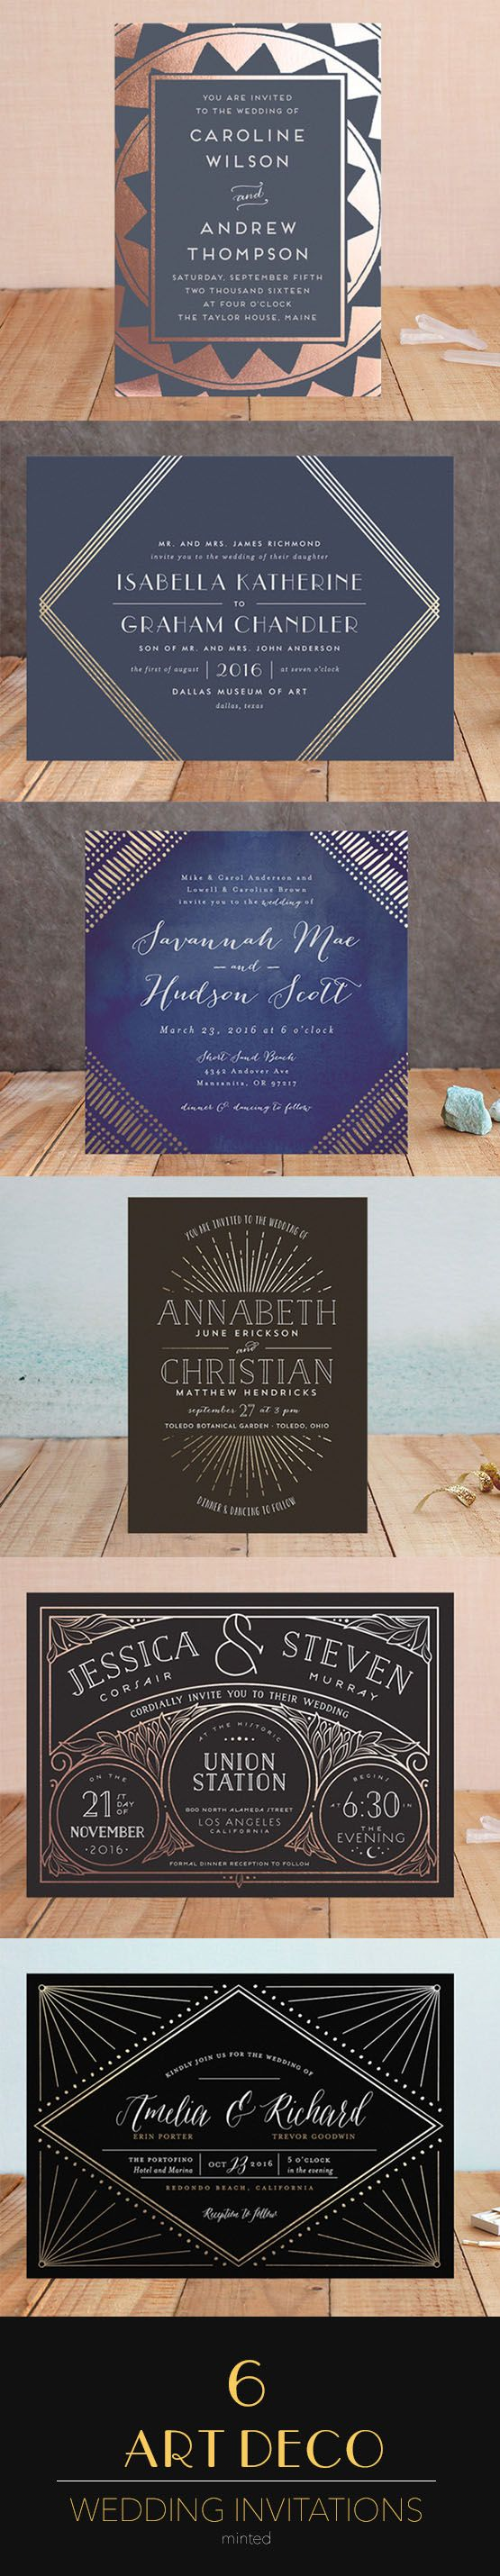 Best 25 Second wedding invitations ideas on Pinterest